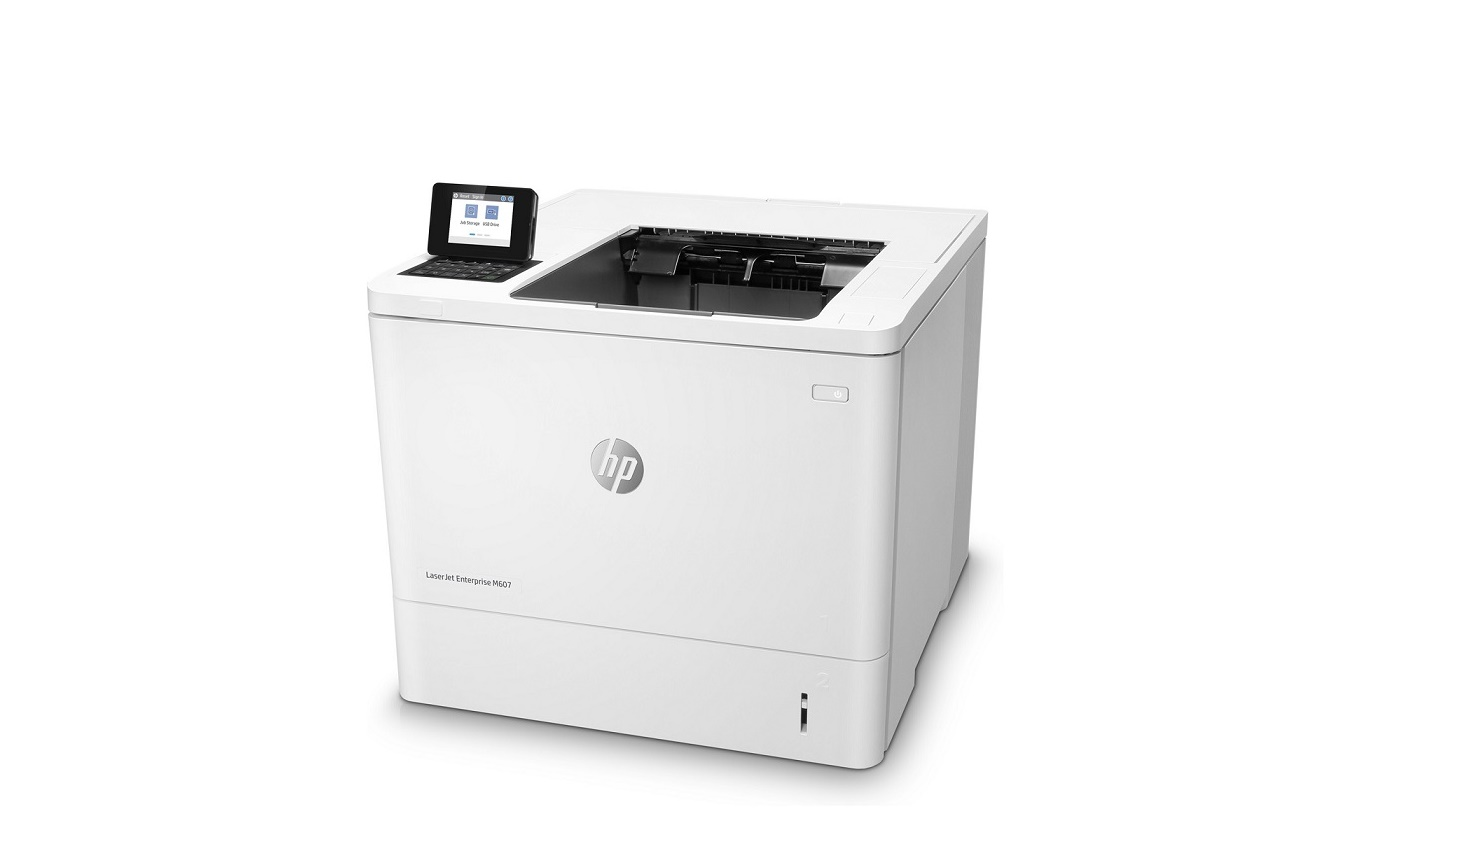 HP LaserJet Enterprise M607dn Up To 55ppm USB Ethernet Monochrome Duplex Printer K0Q15A#BGJ